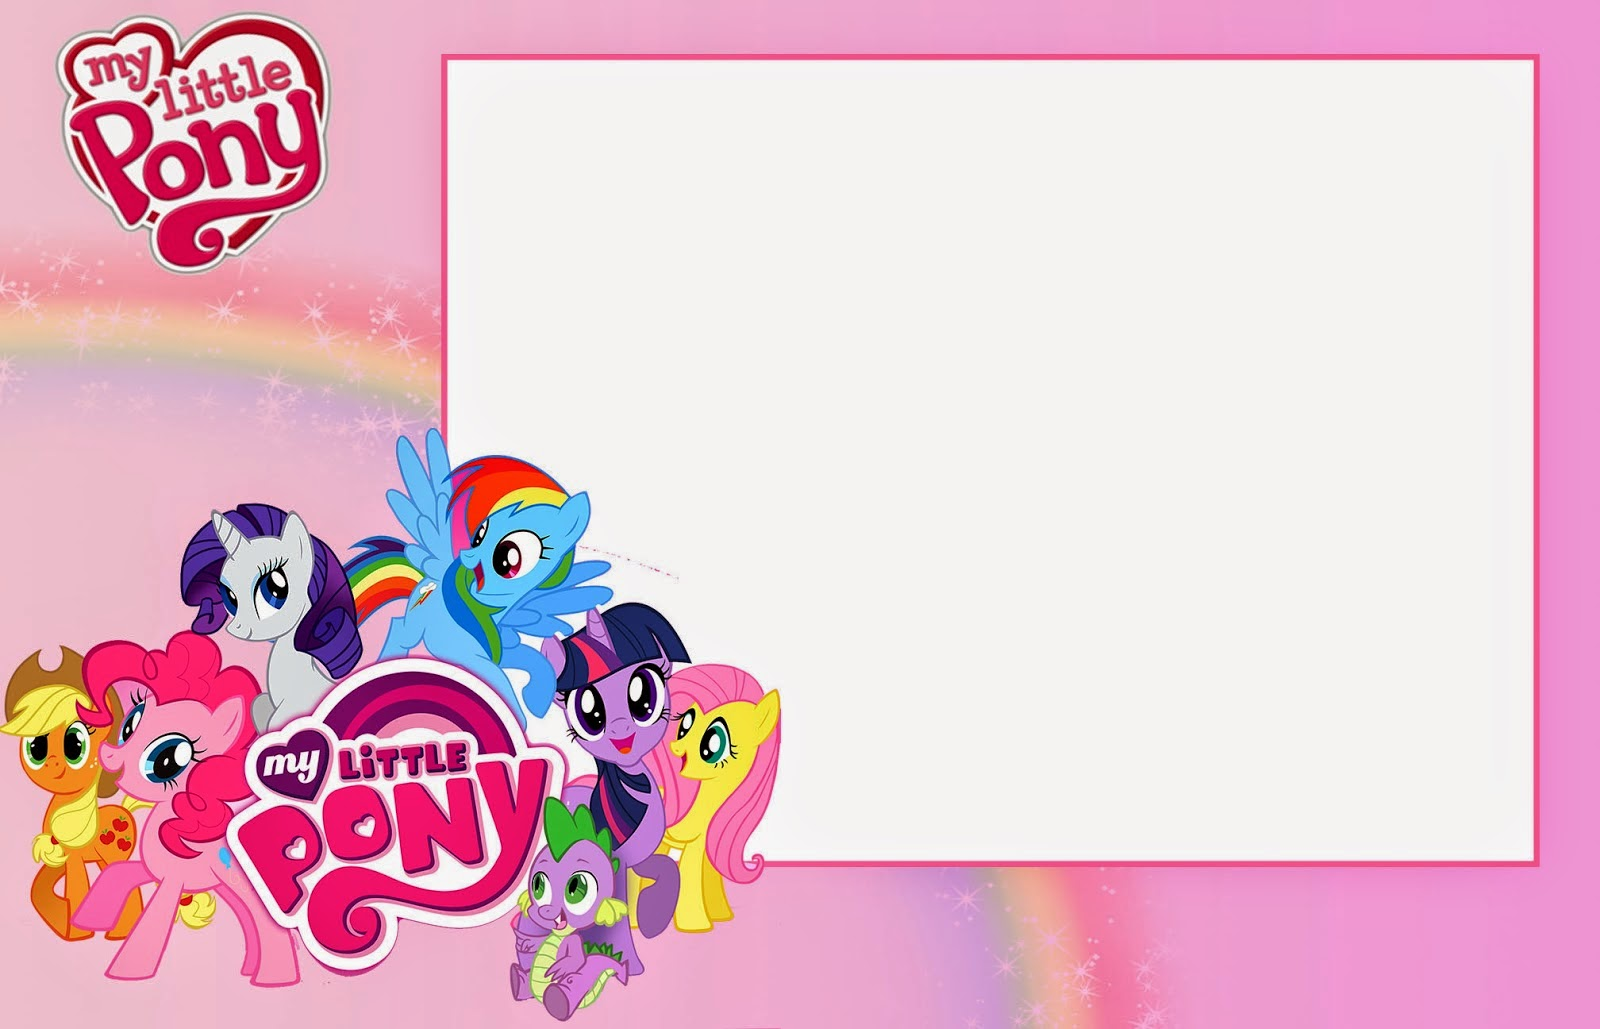 image relating to My Little Pony Printable Invitations named My Minor Pony Bash: No cost Printable Invites. - Oh My